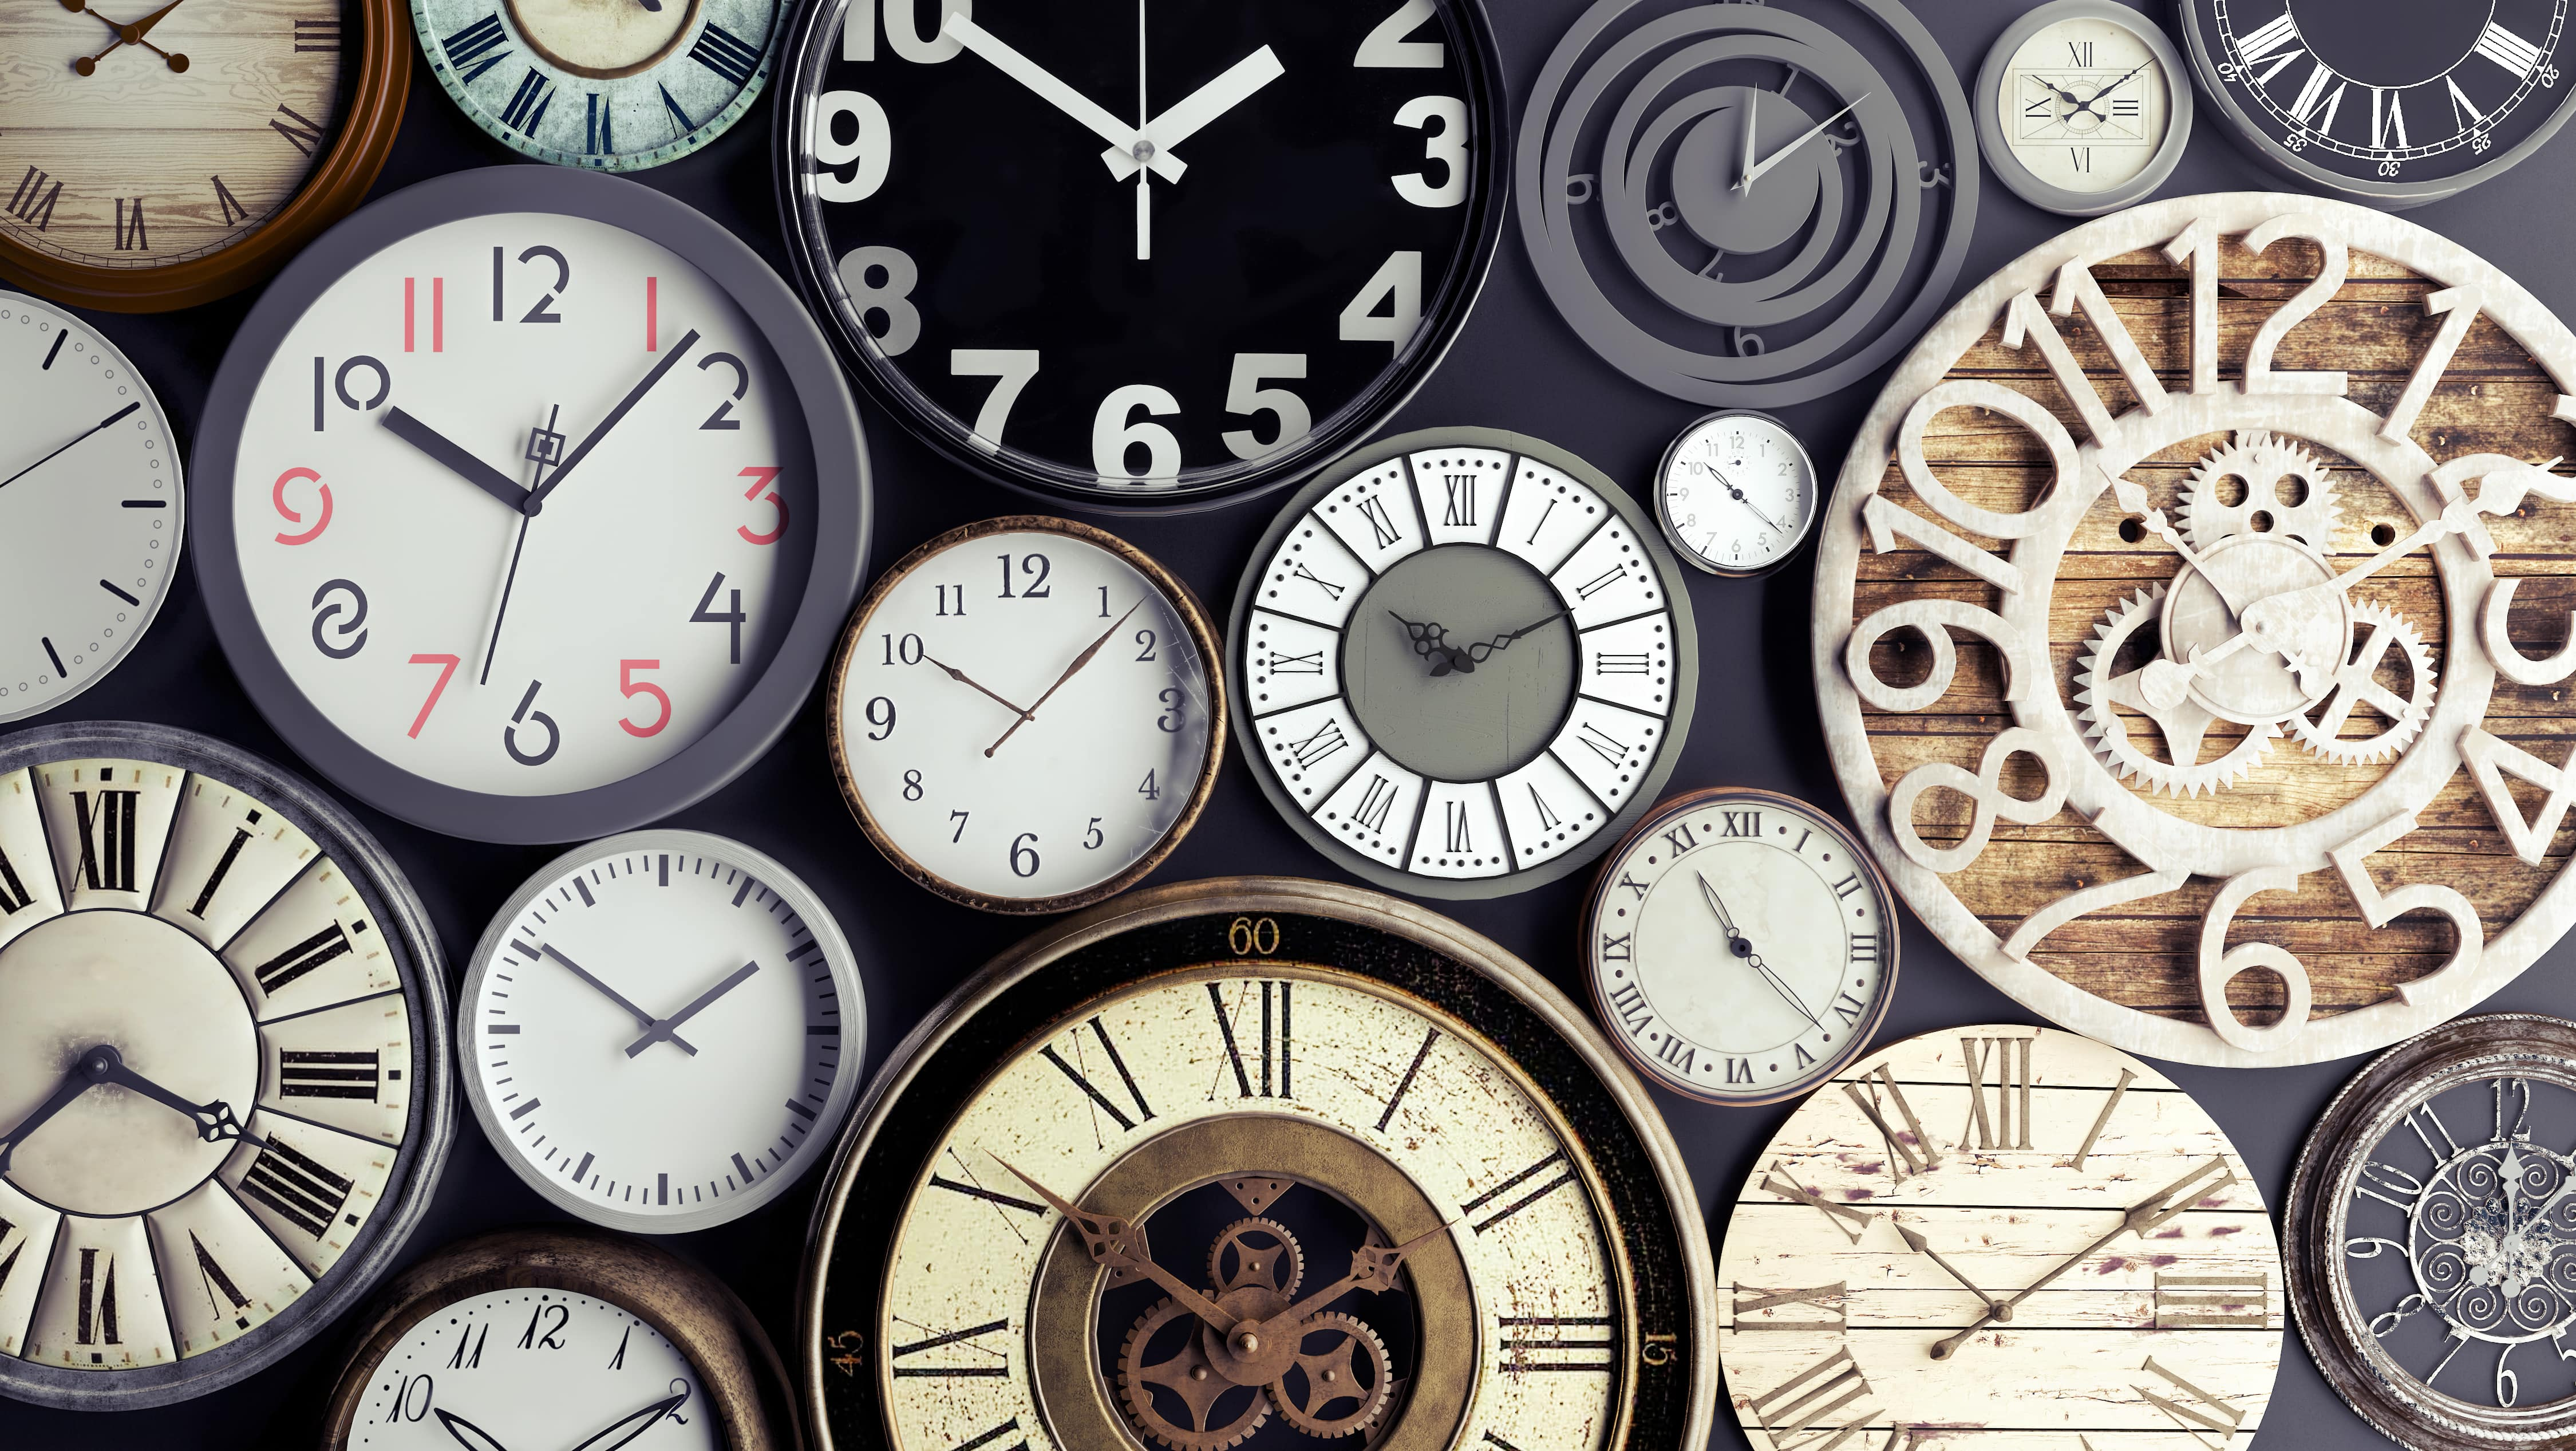 Self-organisation: How to stop all your time from ticking away